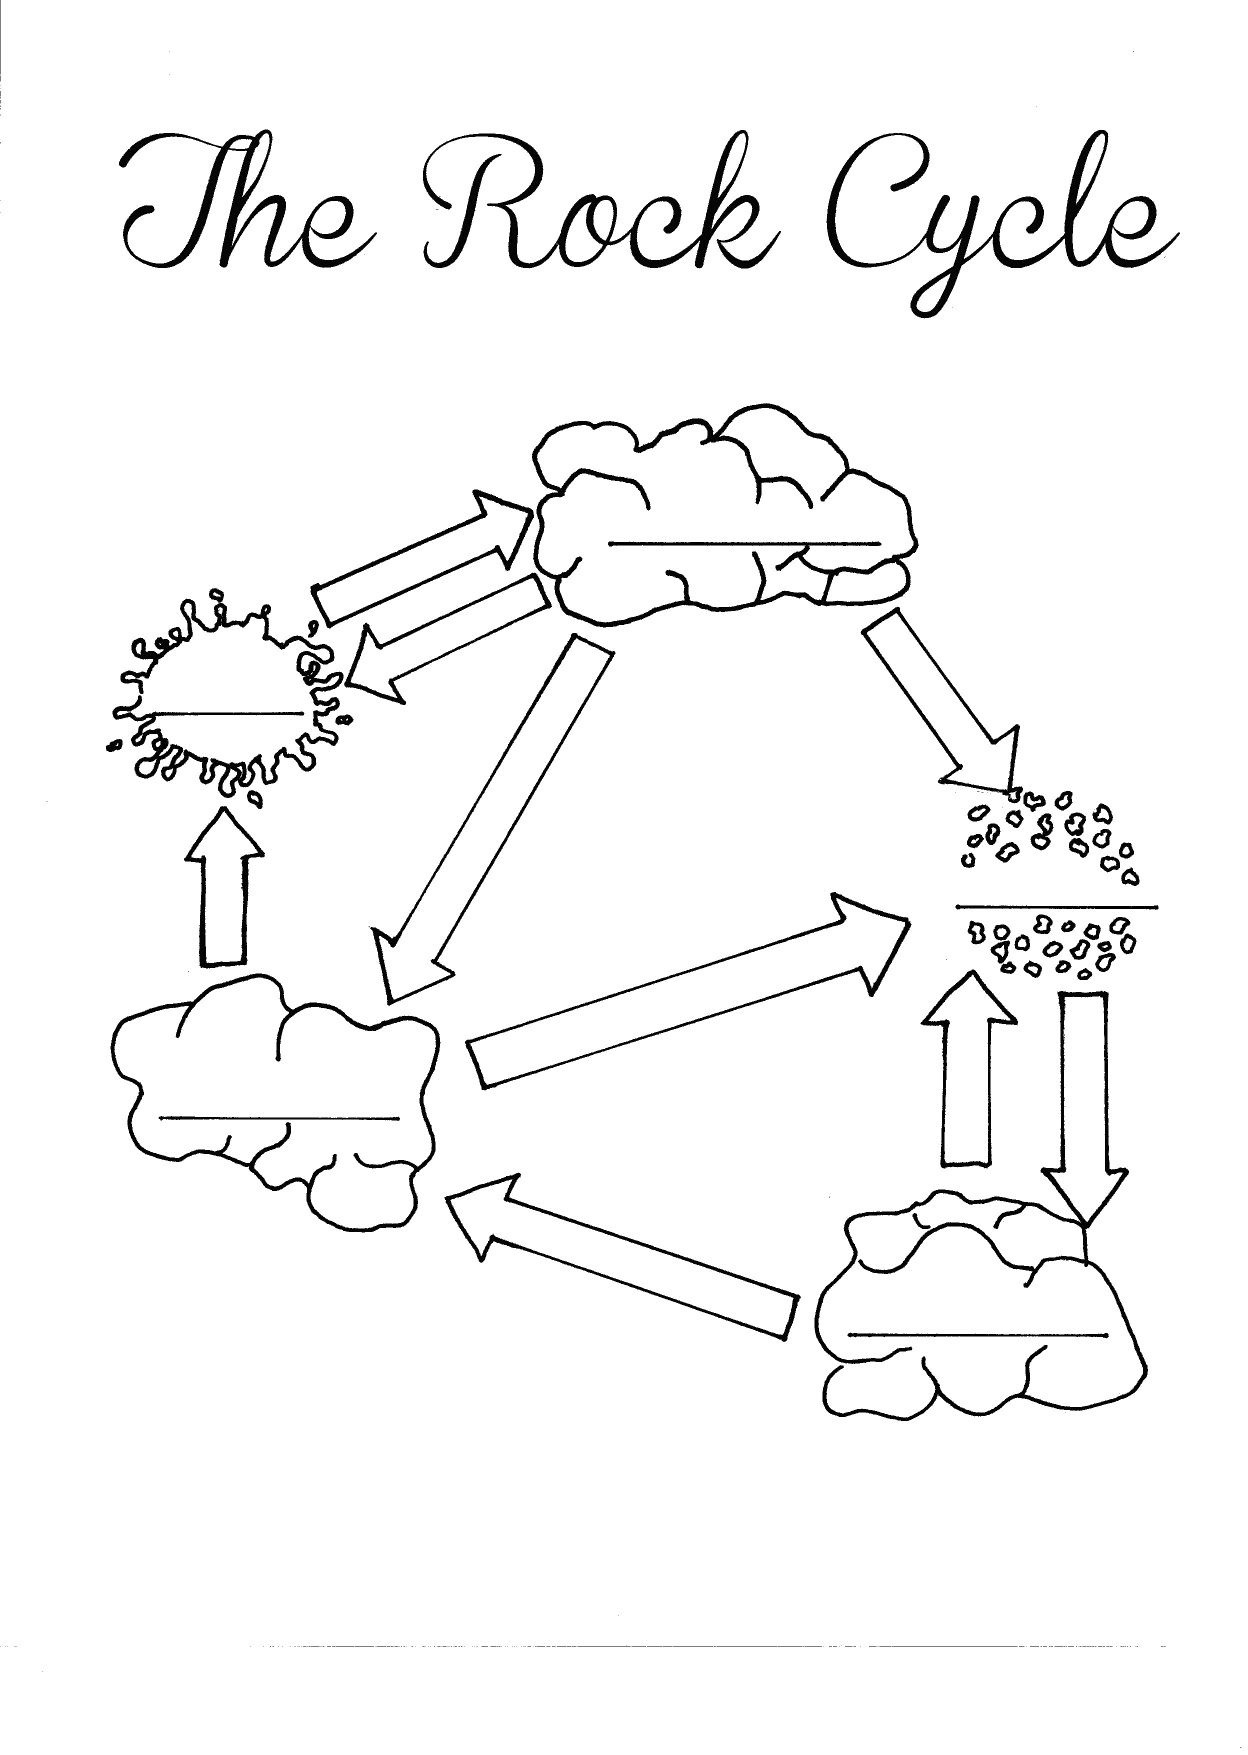 The Rock Cycle Blank Worksheet - Fill In As You Talk About Or Go - Rock Cycle Worksheets Free Printable